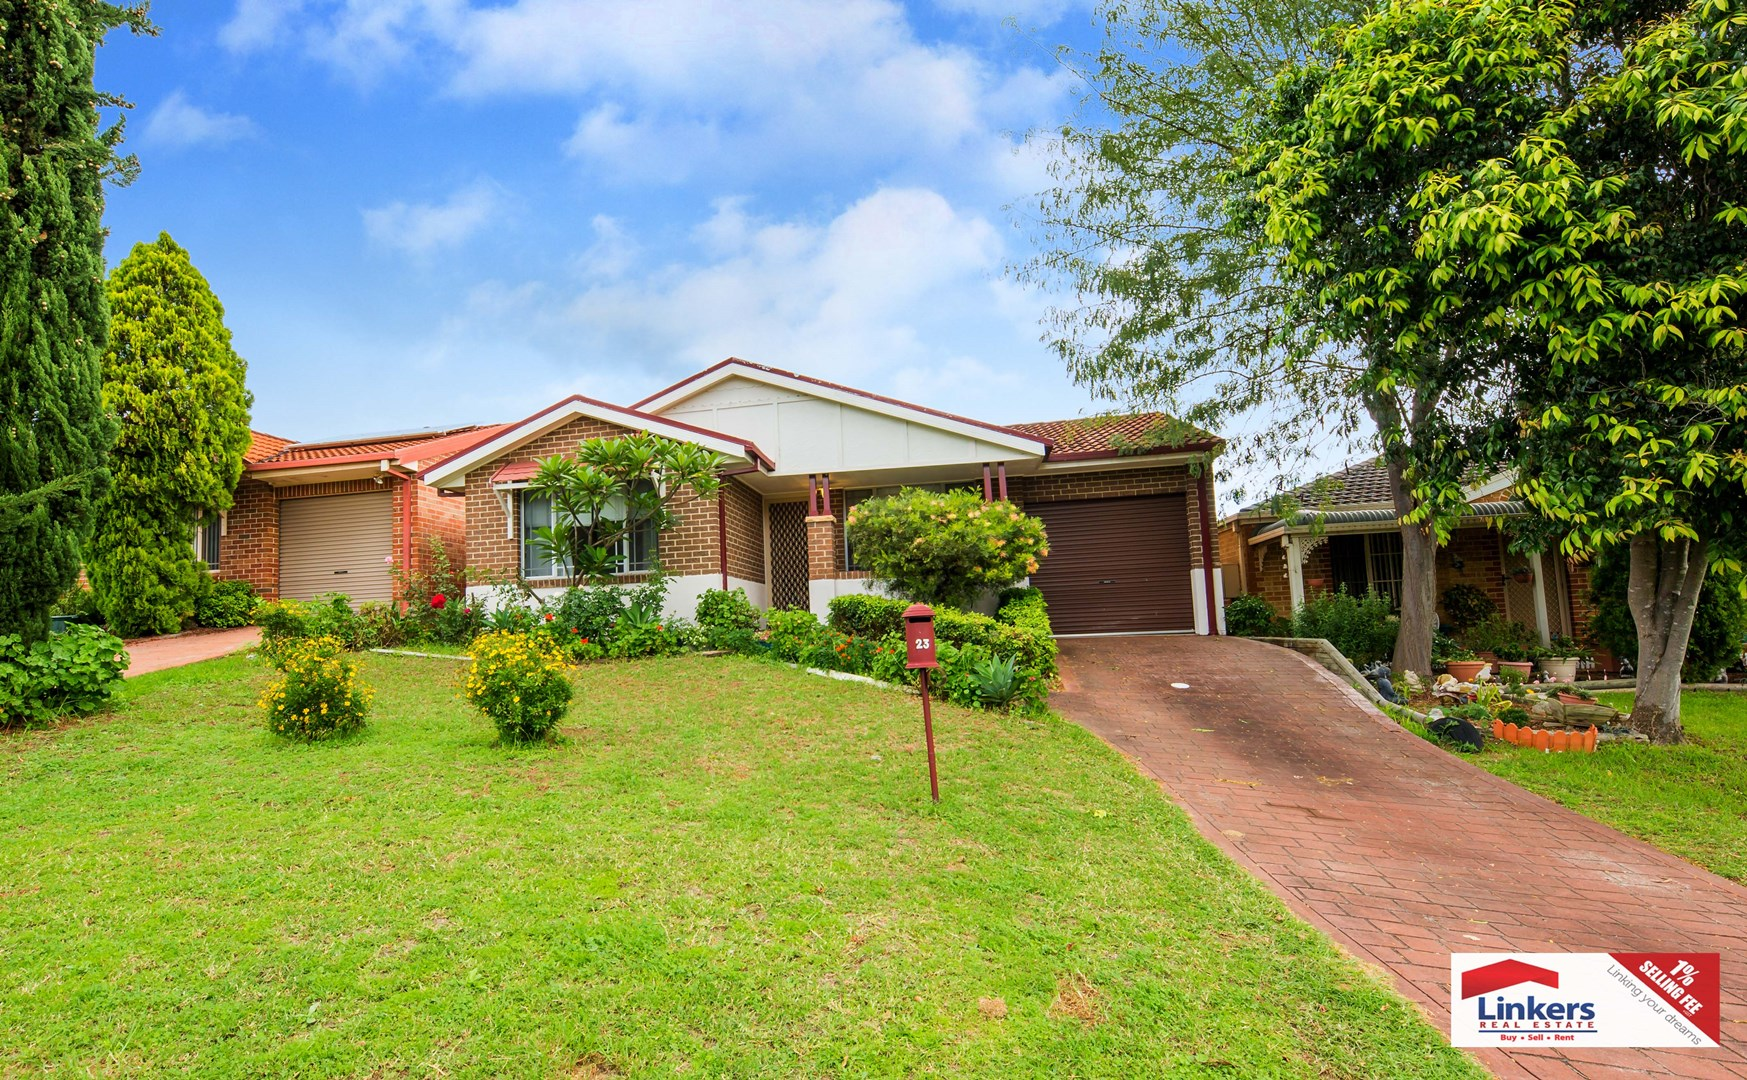 23 Buttercup Street, Macquarie Fields NSW 2564 - House For Sale ...